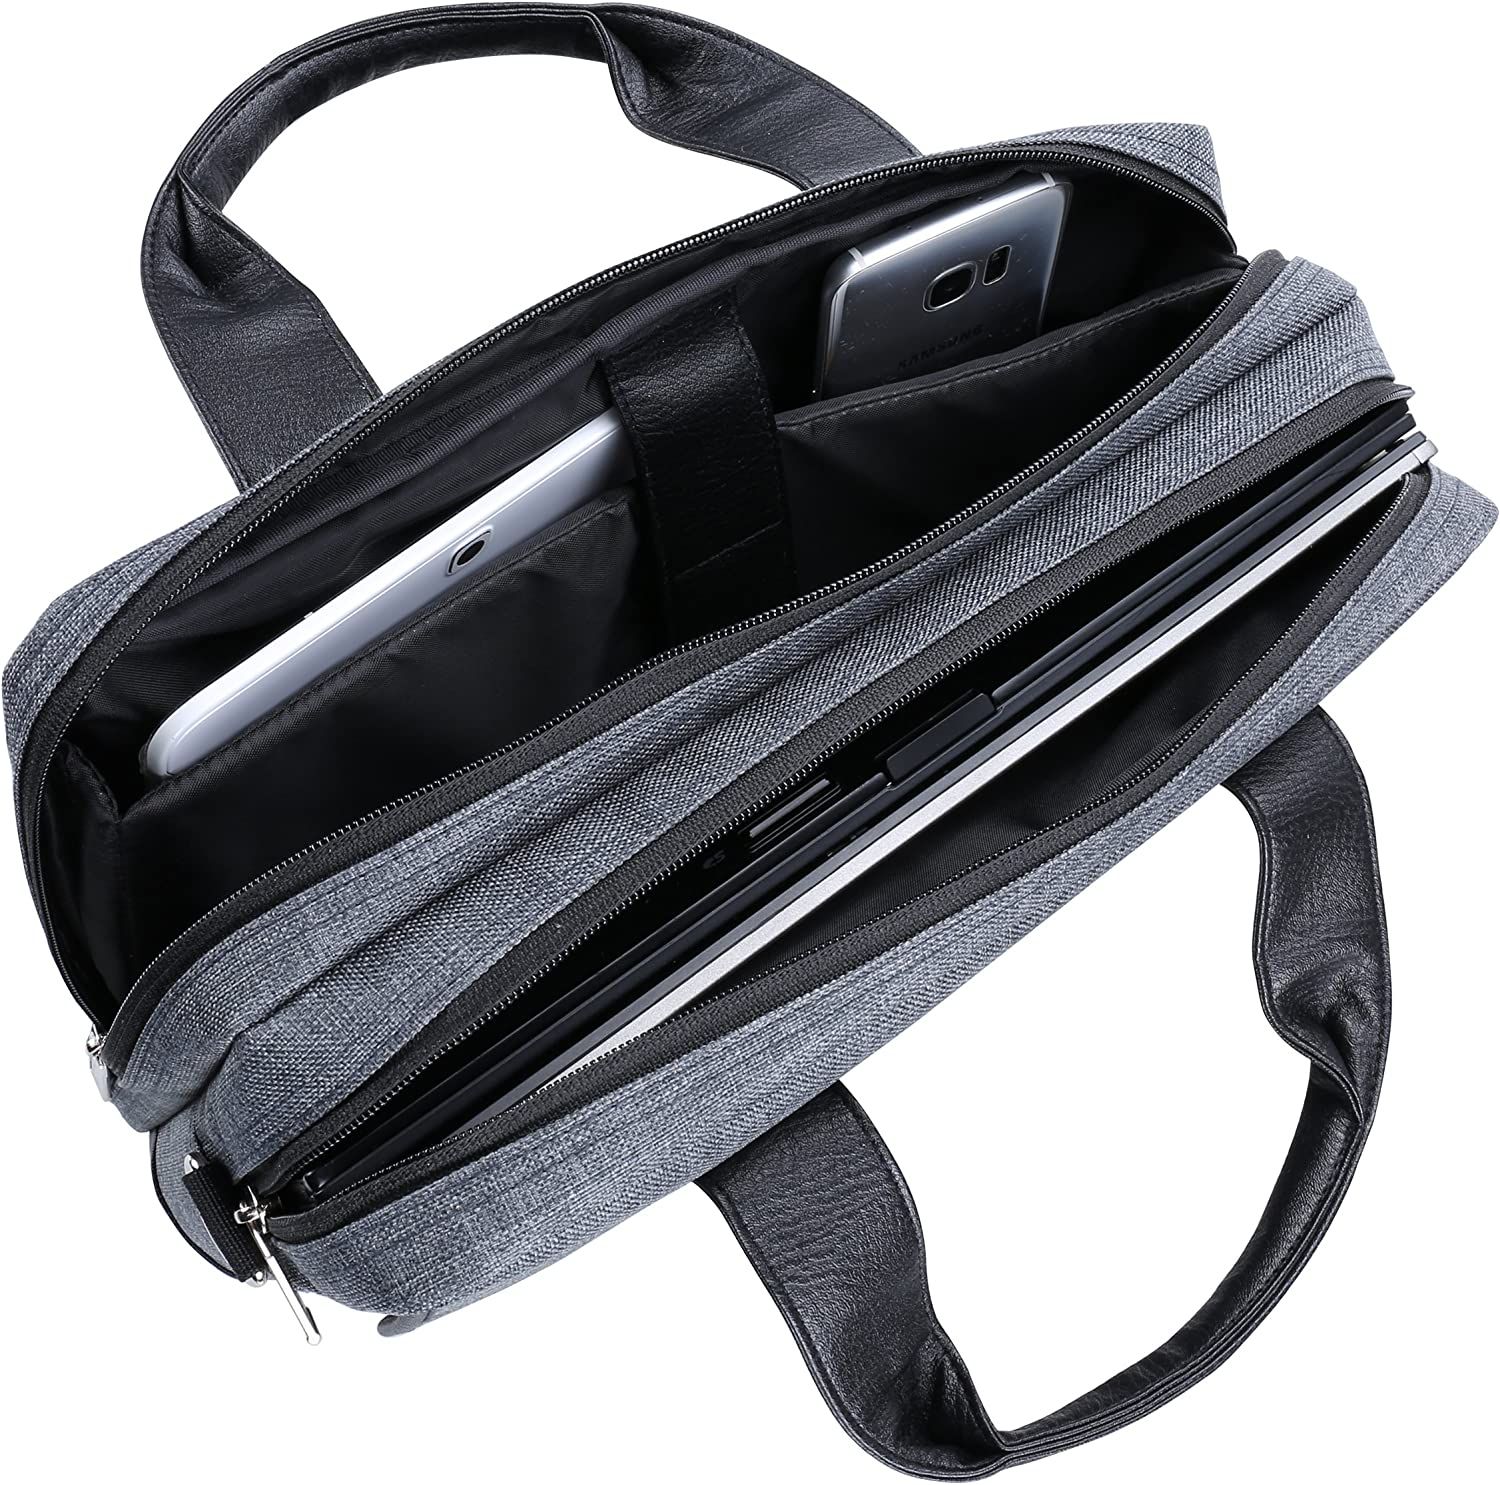 ThinkPad Chrono Grey Tote Messenger Bag Briefcase for Lenovo Yoga IdeaPad Series 11.6 to 12.5 Tablet Laptop and Sync and Charge Cable Flex